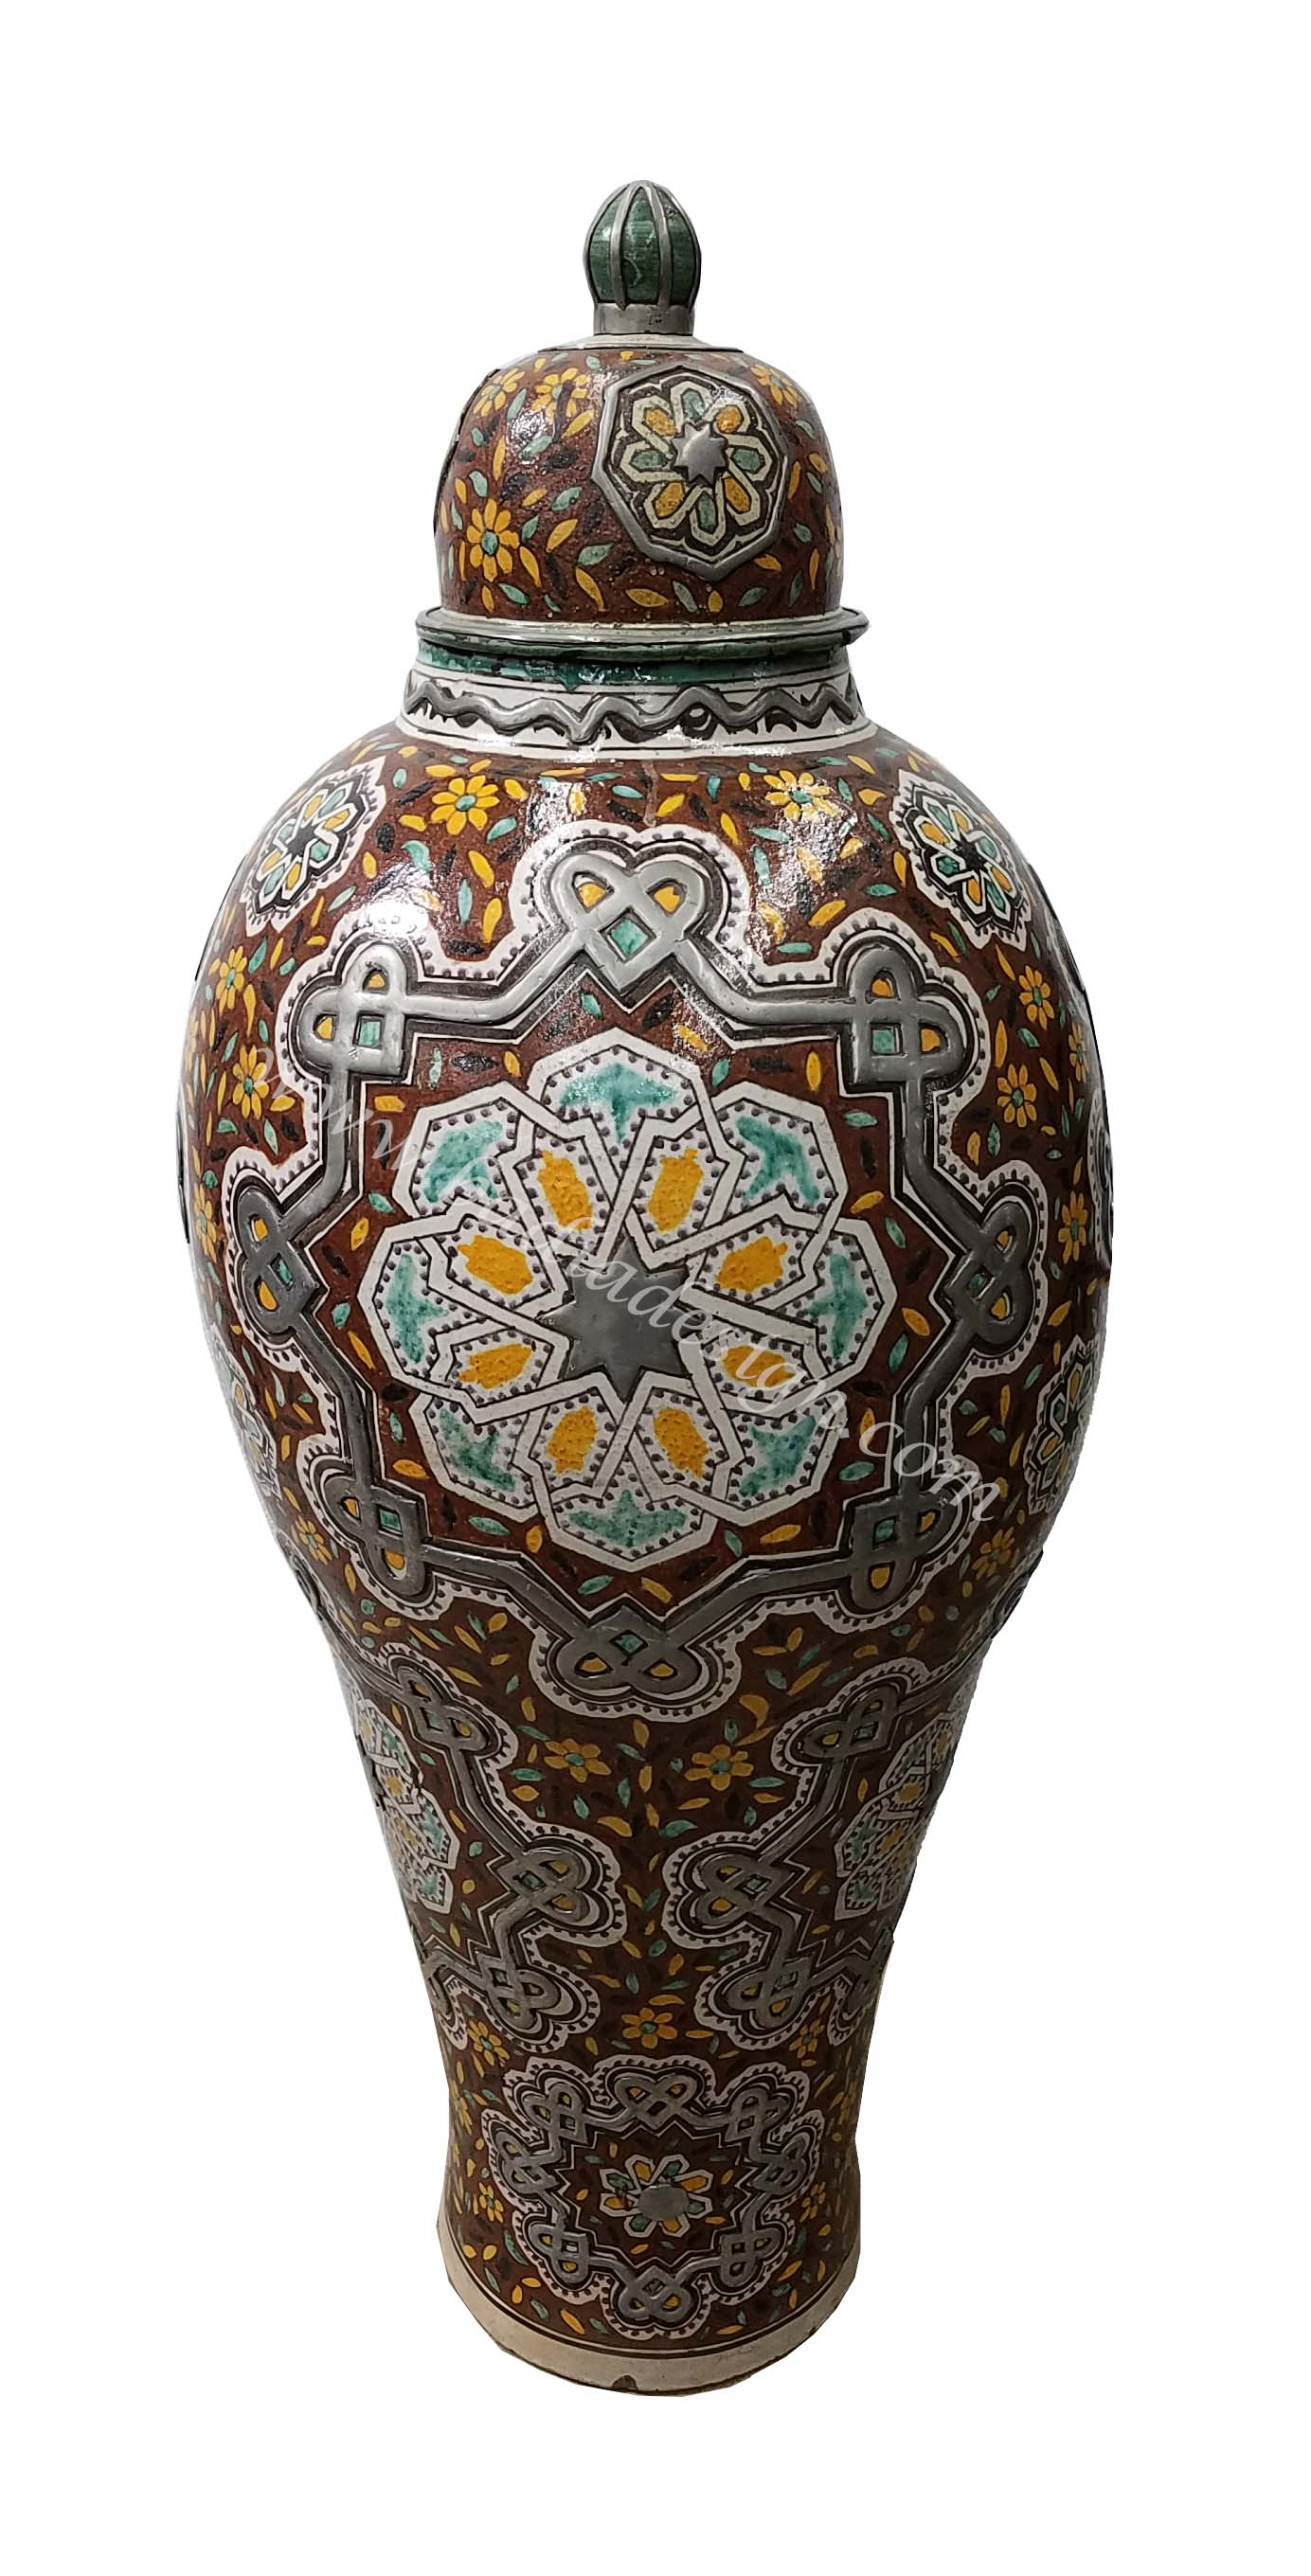 vibrant-hand-painted-multi-color-ceramic-urn-va063.jpg